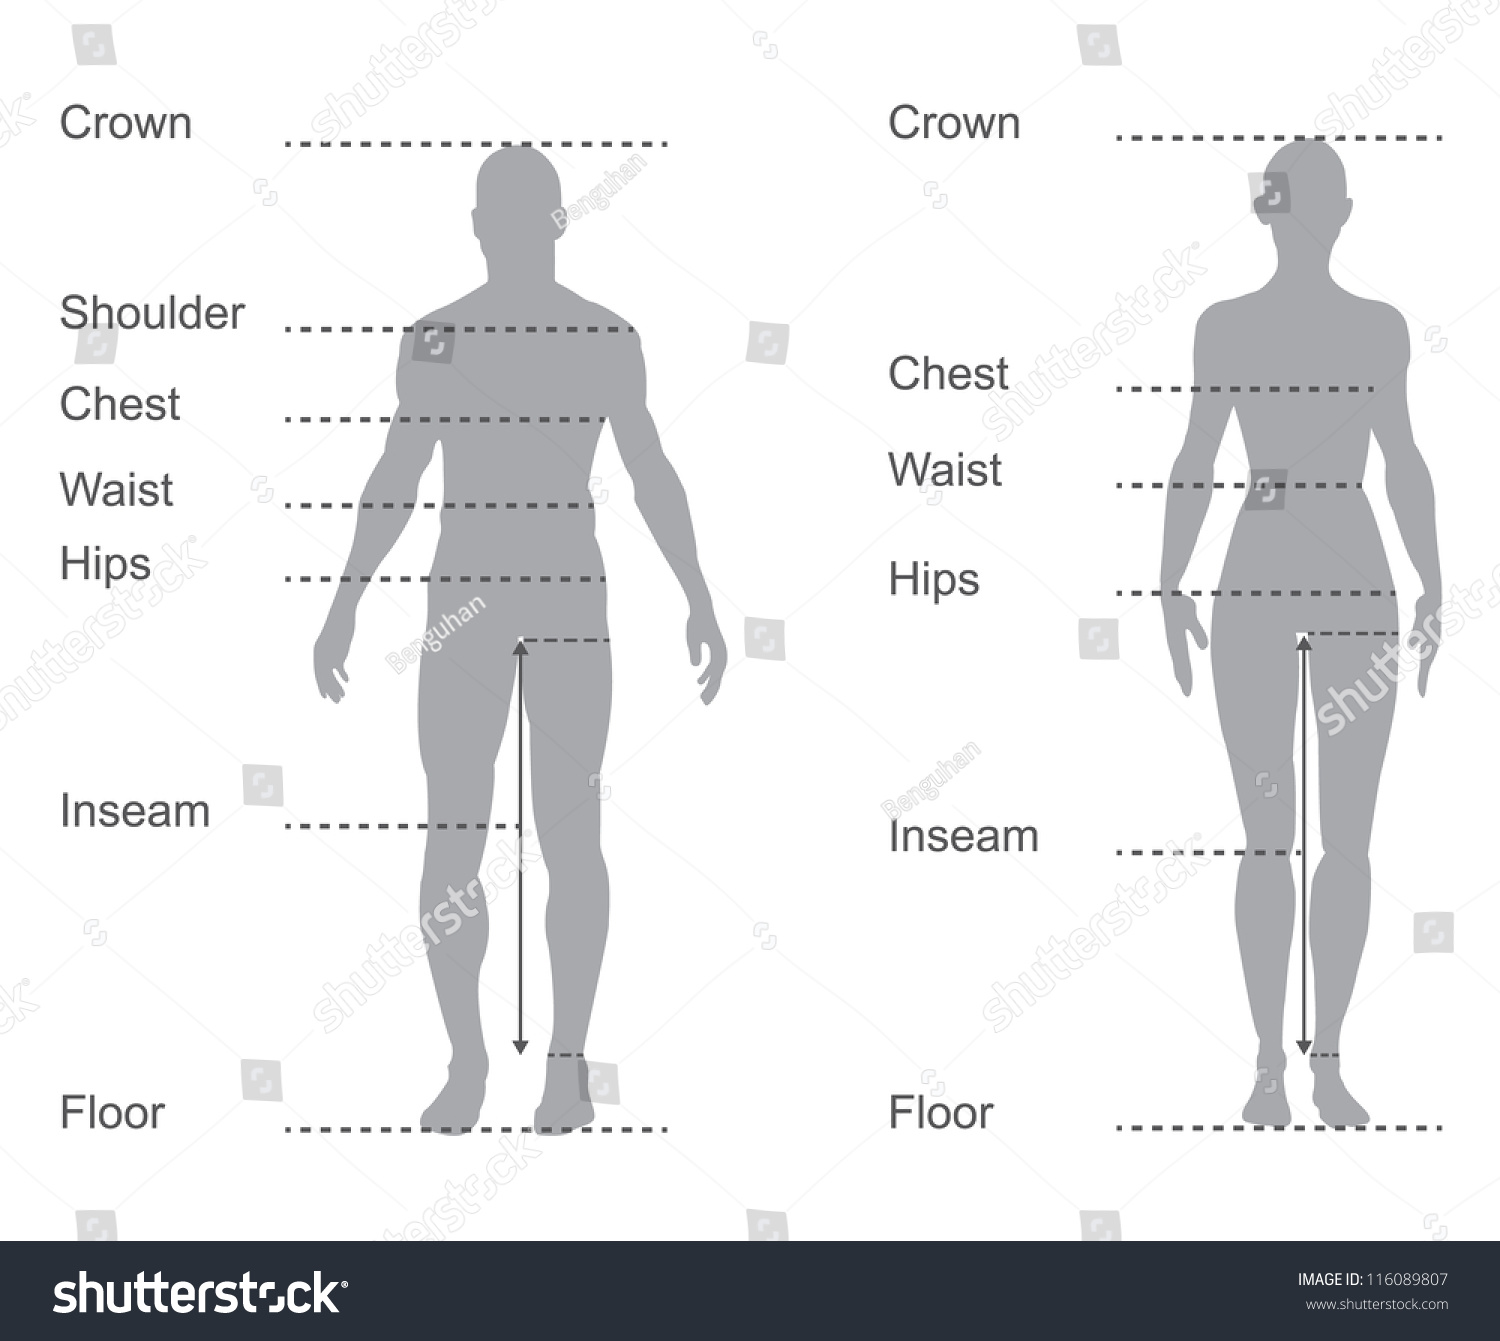 body measurement chart men - Madran kaptanband co